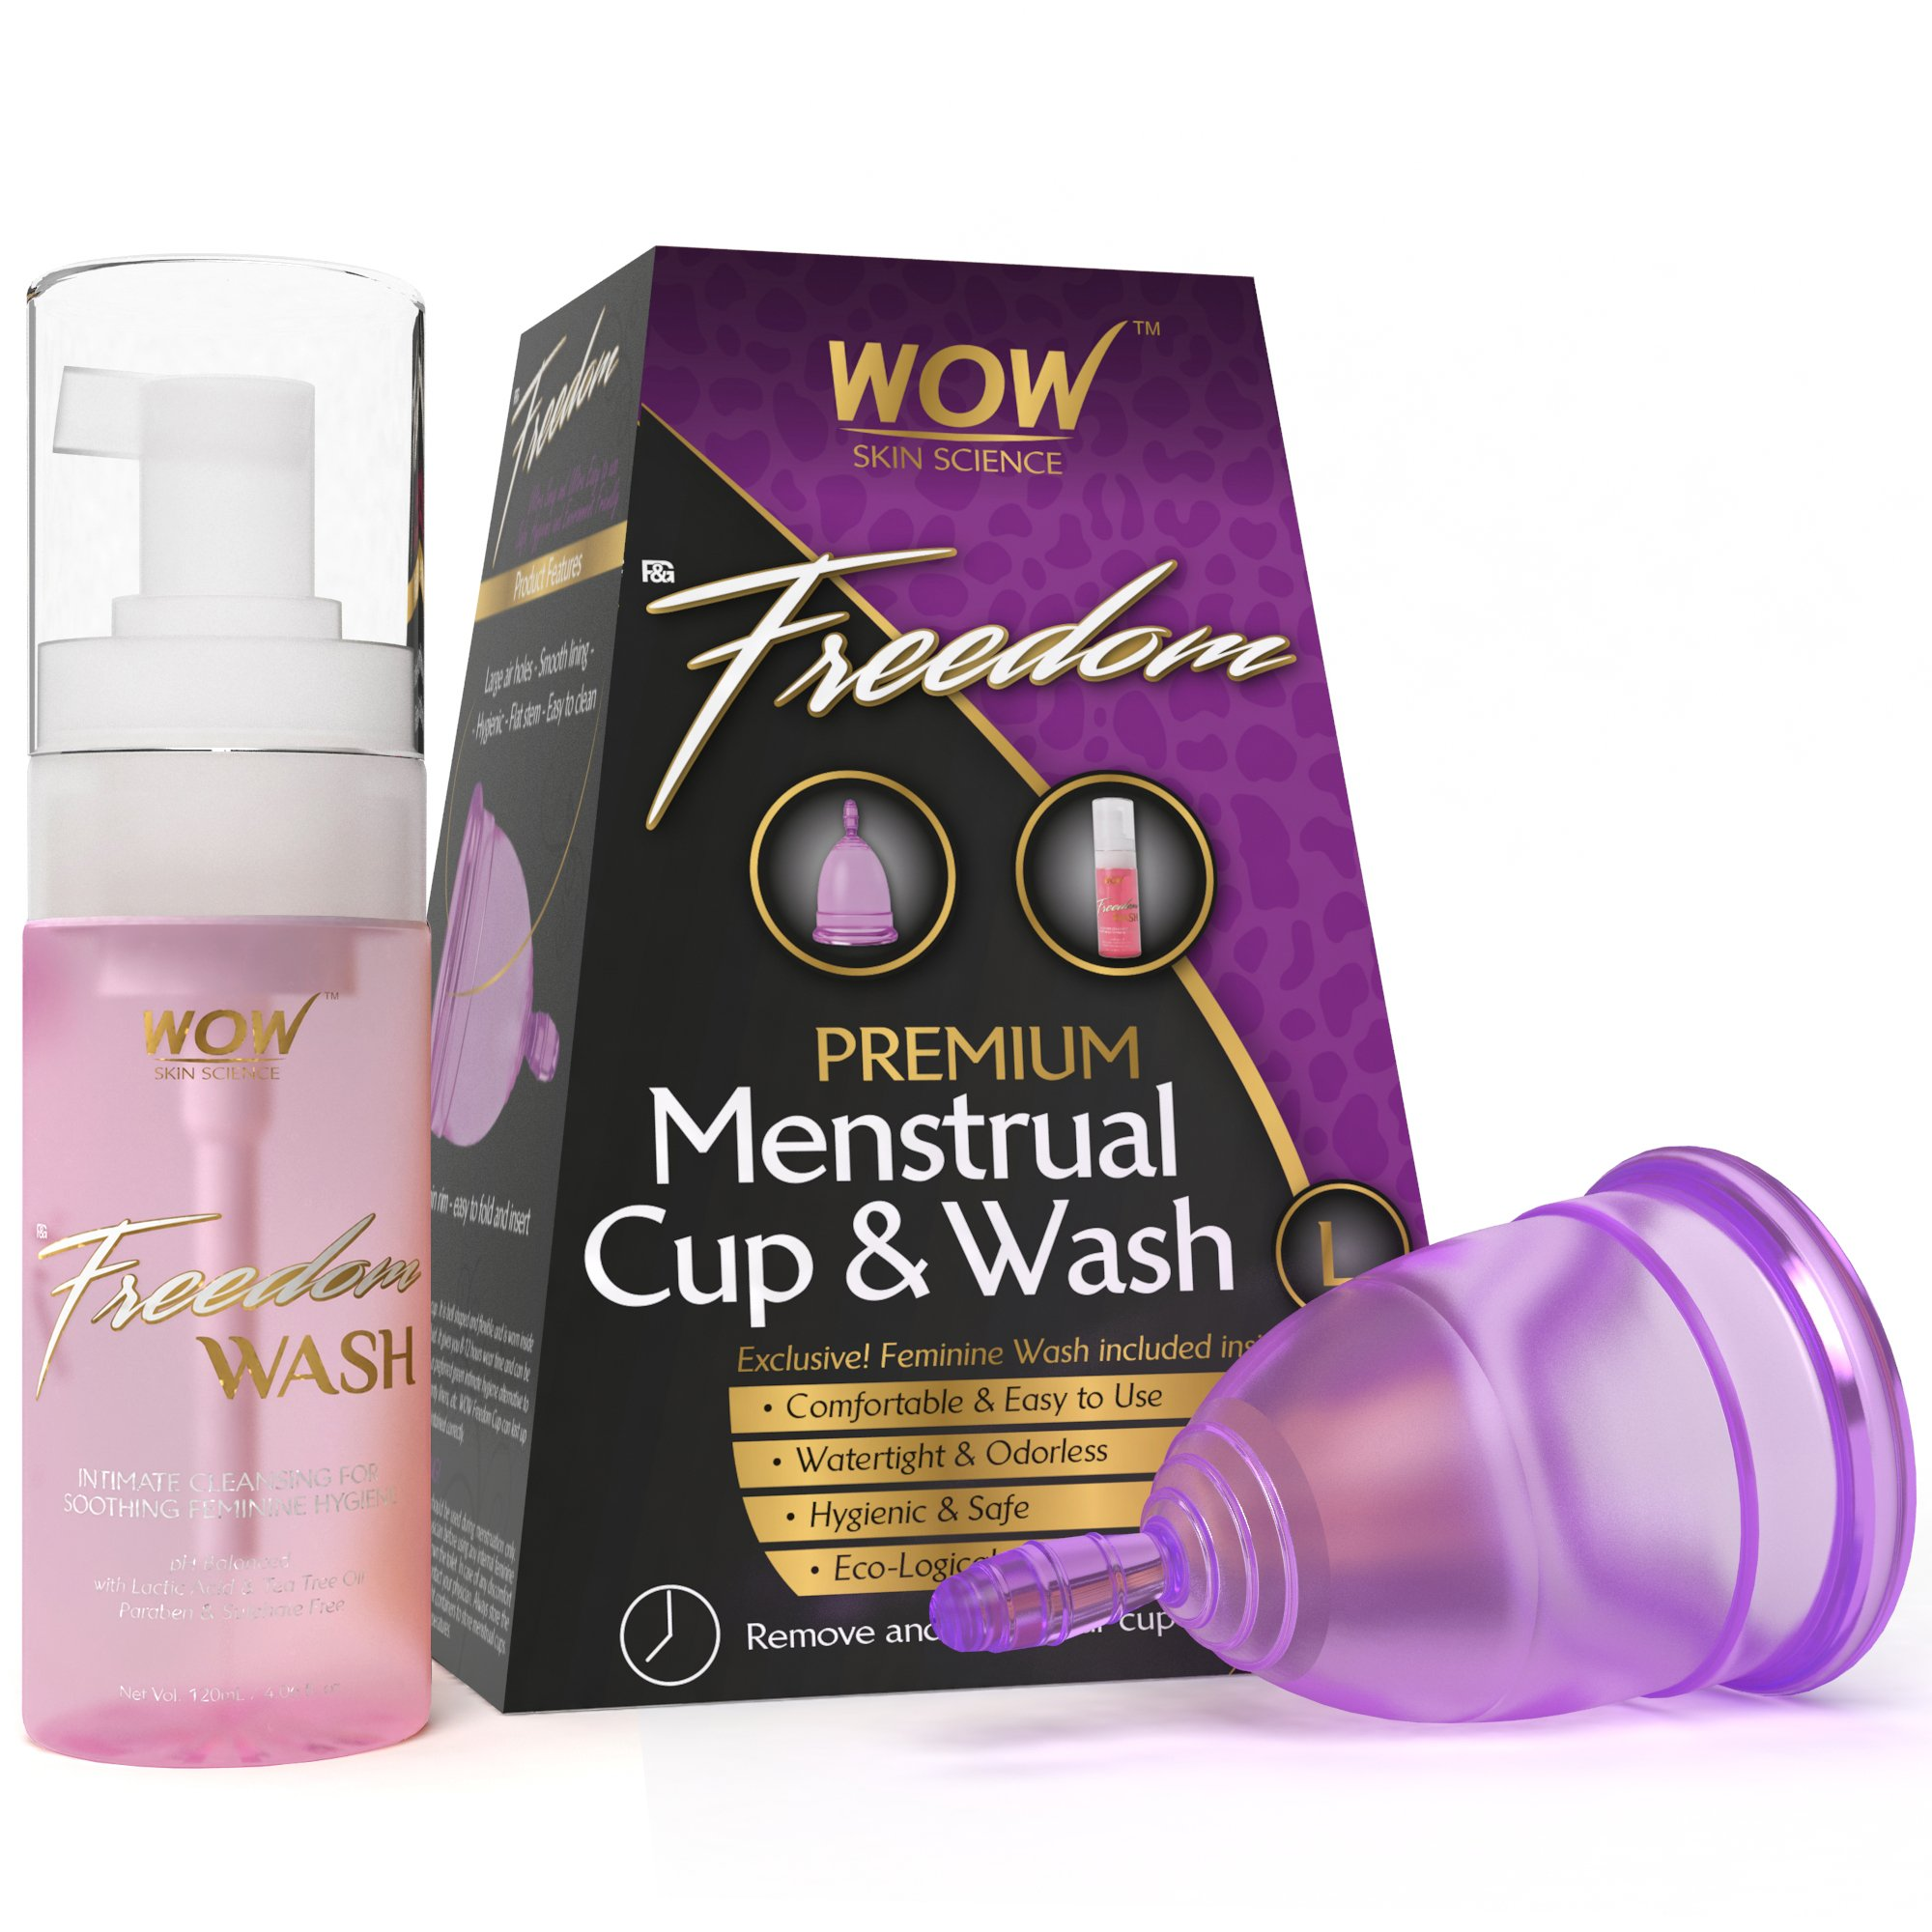 WOW Freedom Reusable Menstrual Cup and Wash Post Childbirth - Large (Above 30 Years) product image